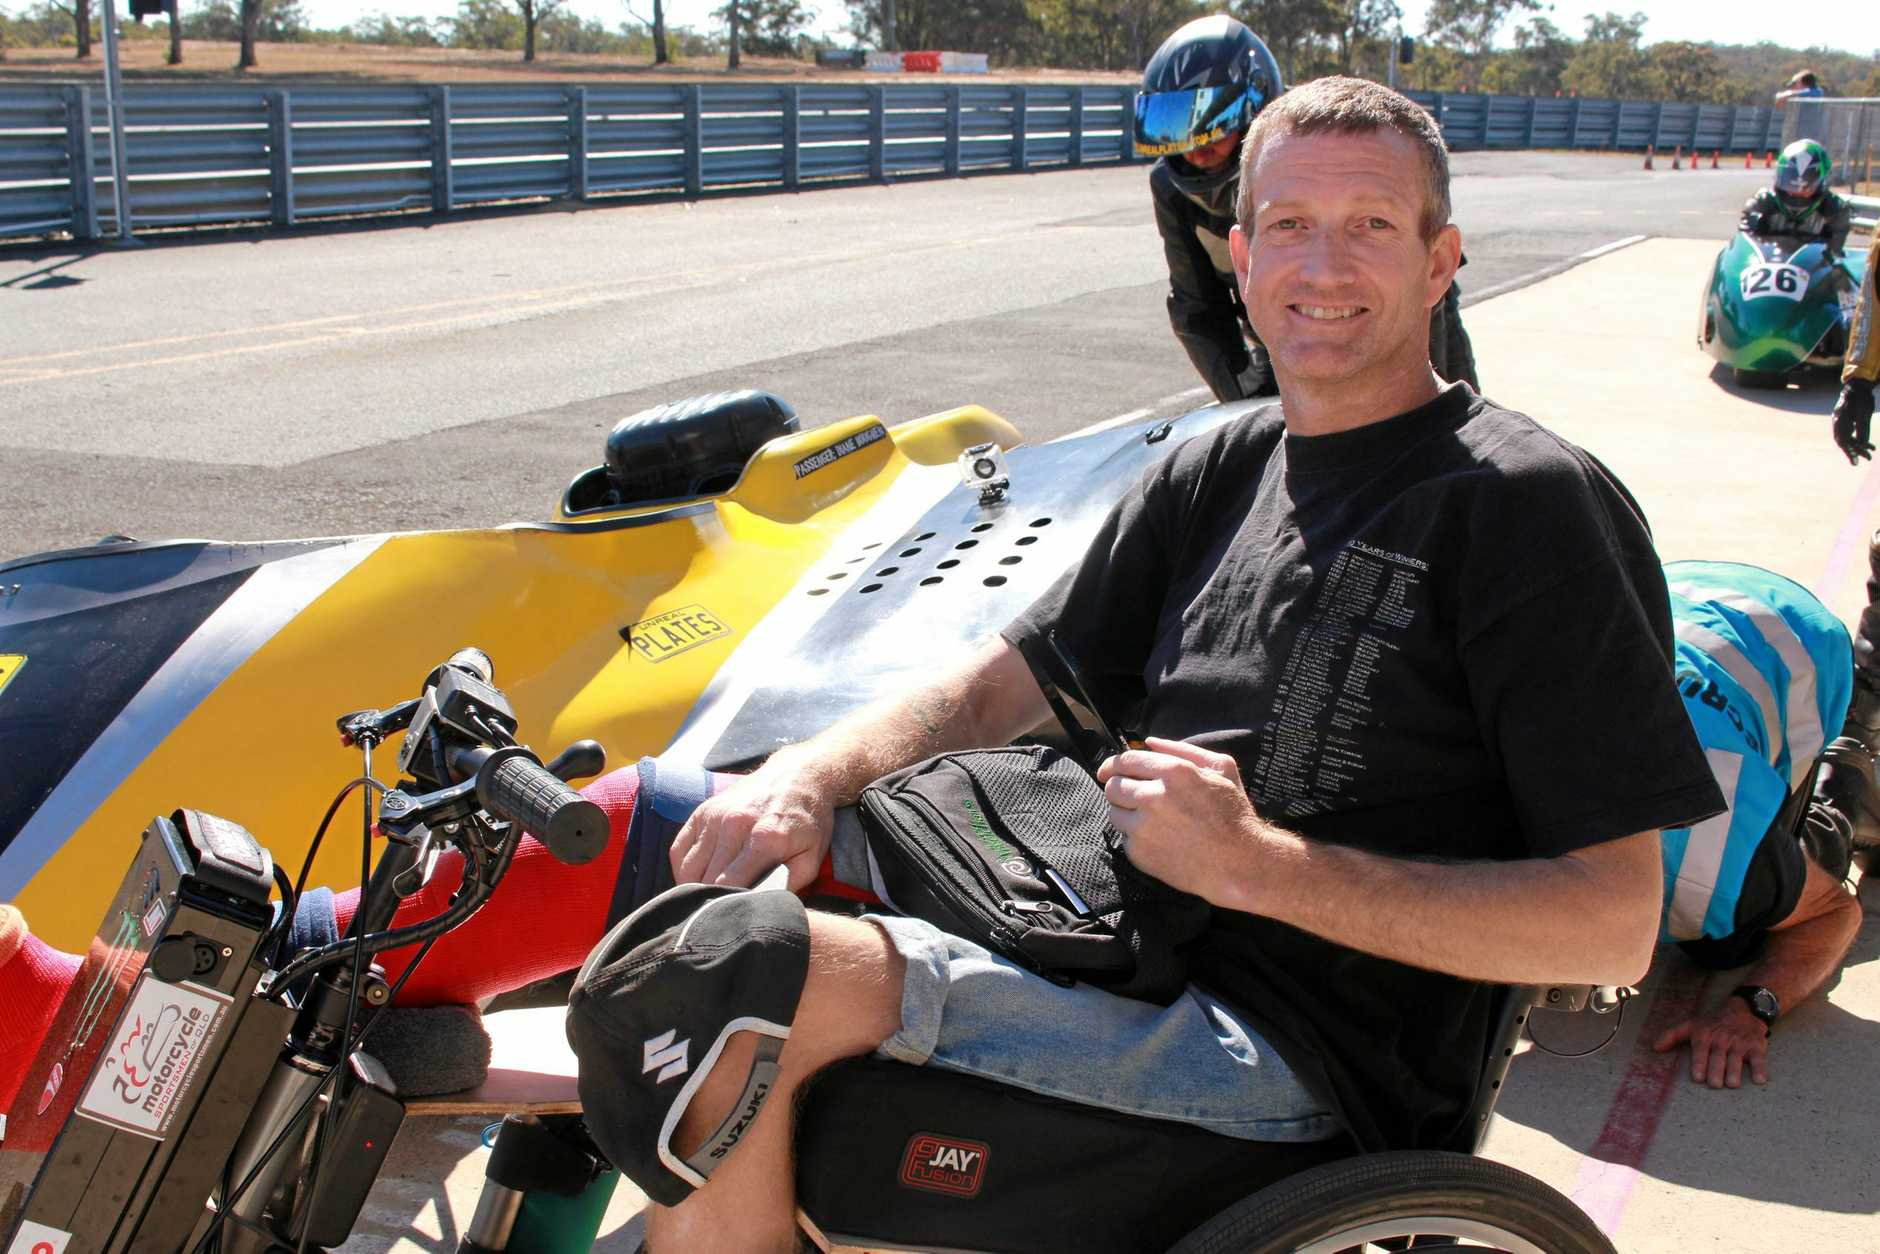 BIG HEART FOR RACING: Andrew Phillips wouldn't dream of giving up the sport that keeps him grinning. Two years after becoming a T12 paraplegic, he is clocking up race times faster than ever and improving every day.